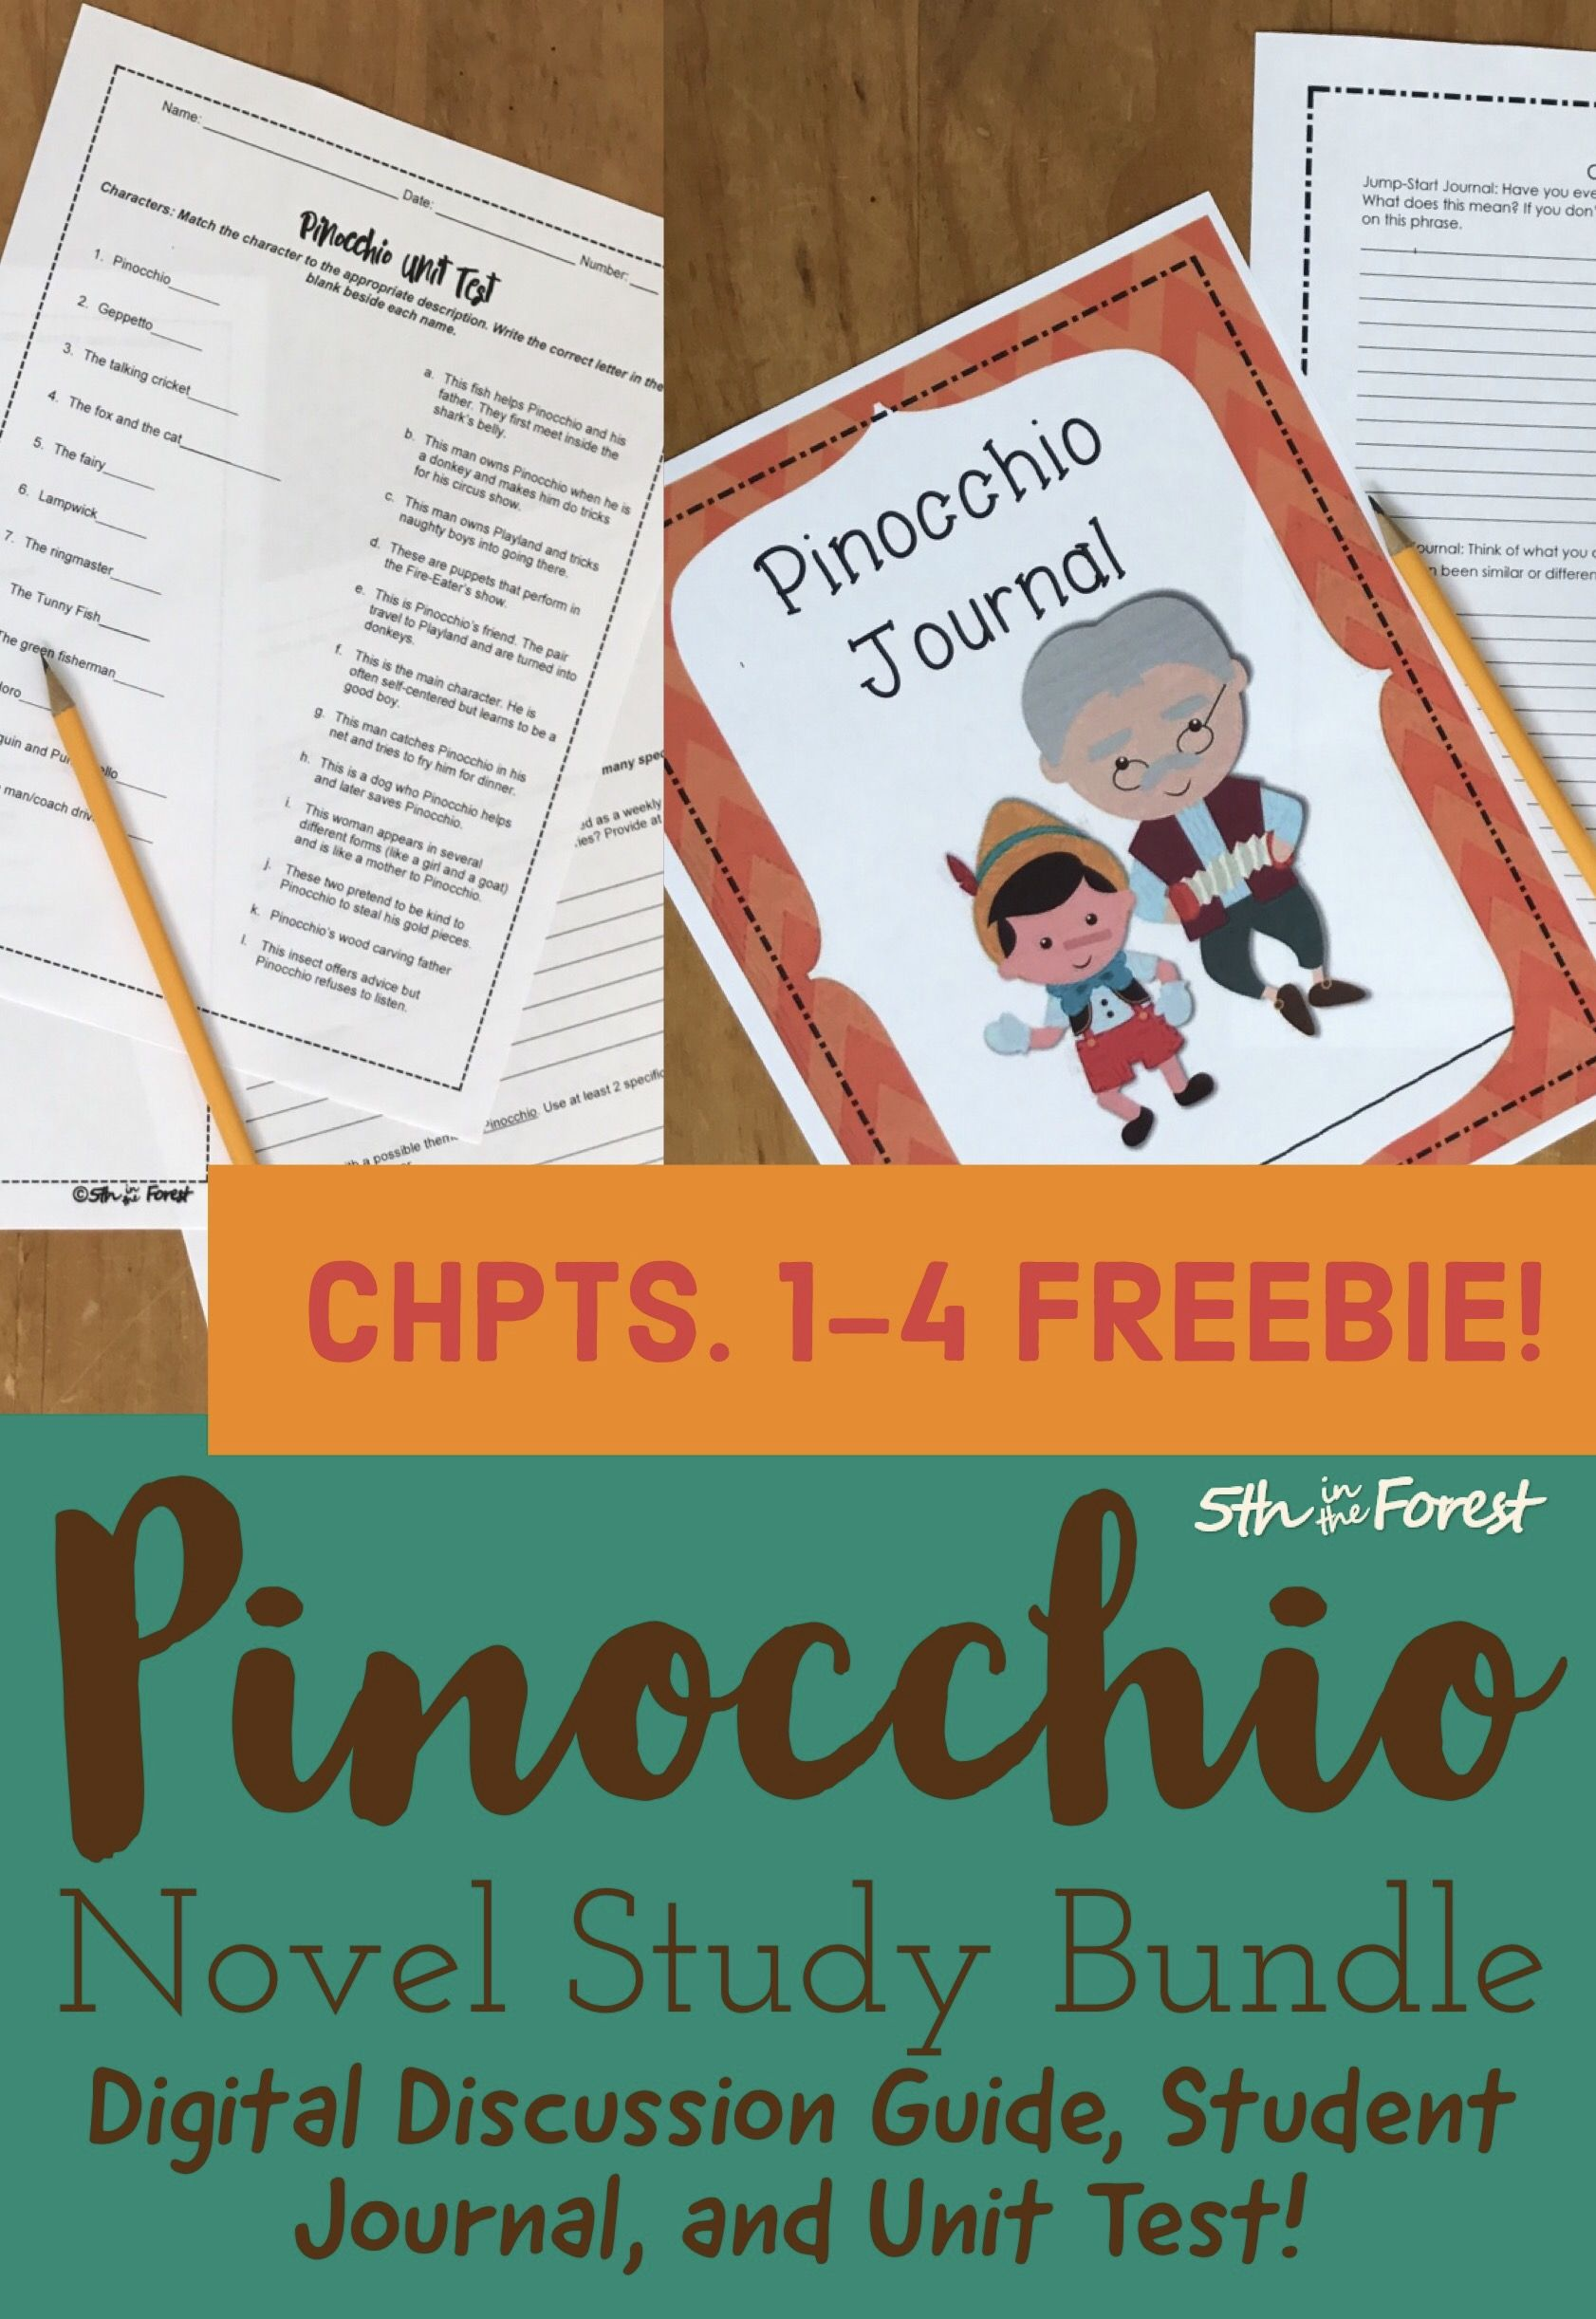 This download is a FREE SAMPLE of my Pinocchio Novel Study Unit. You will  receive